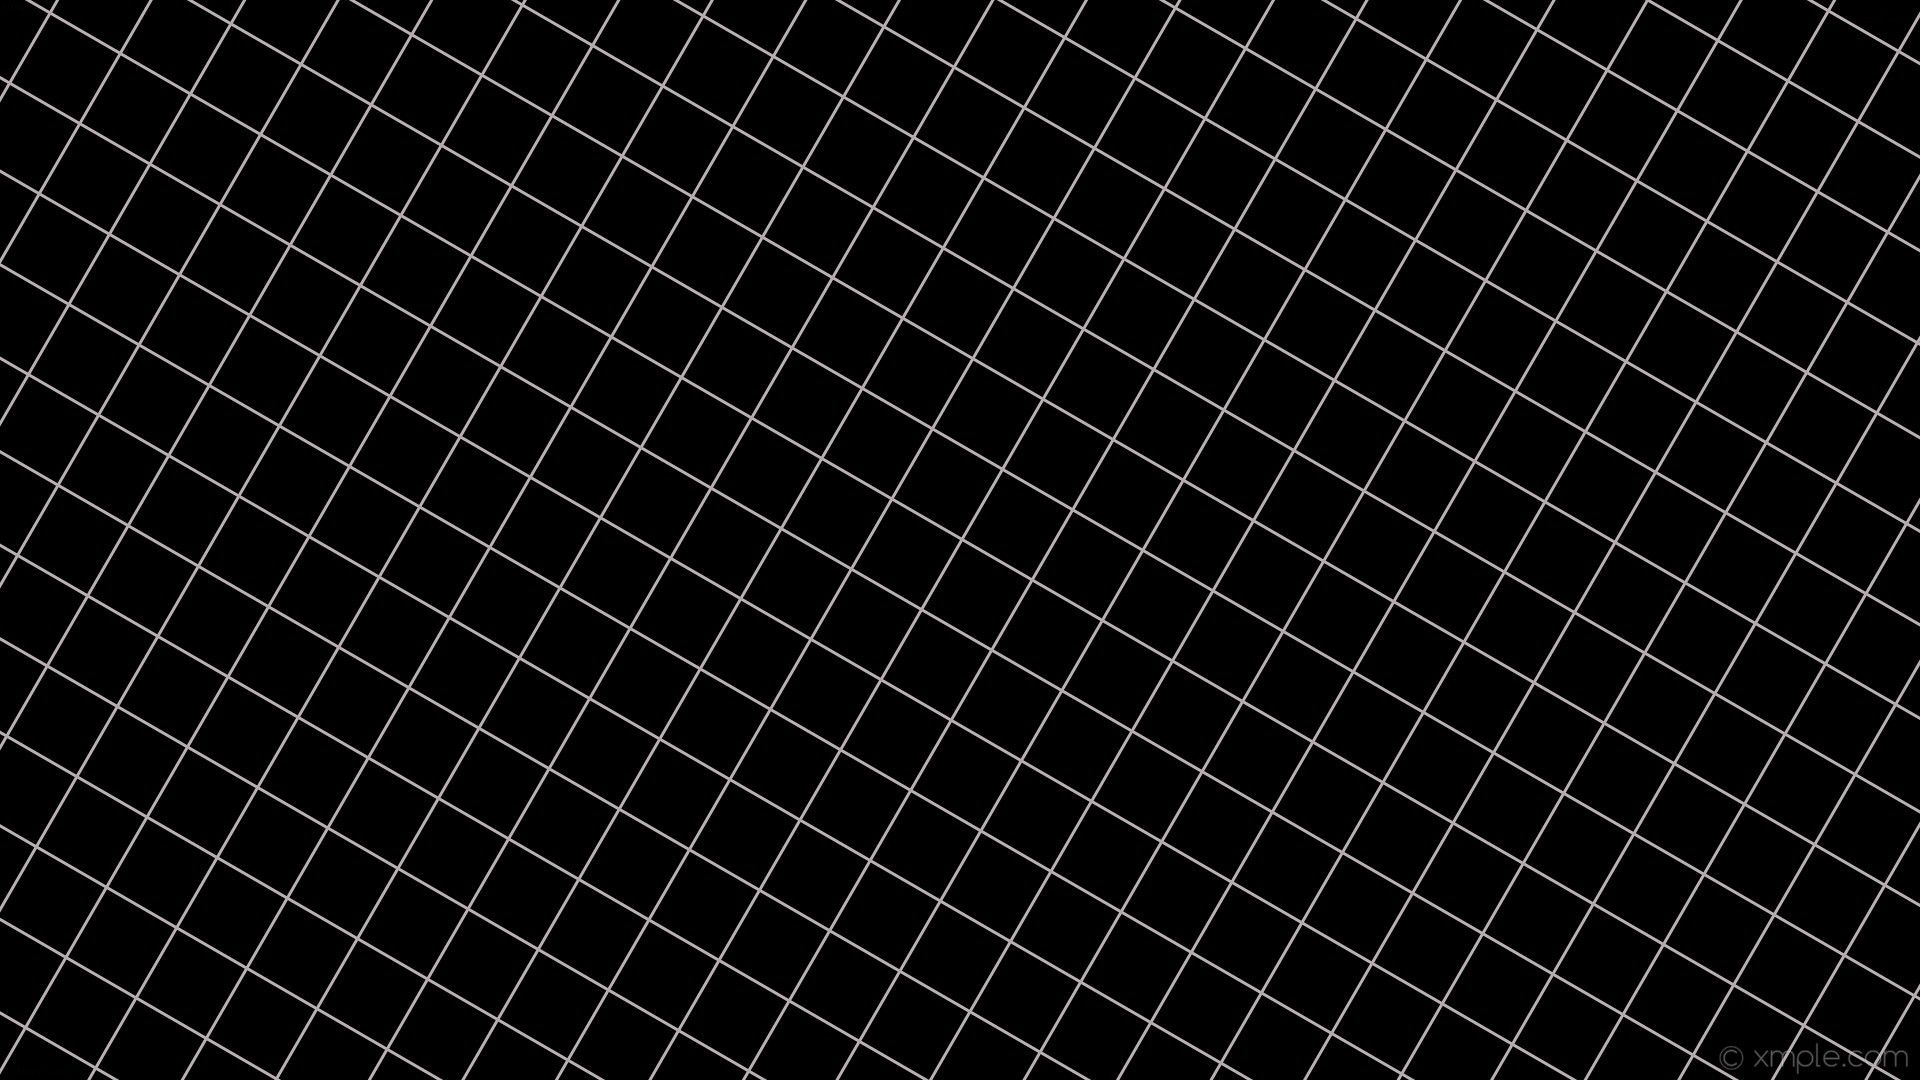 Black And White Aesthetic Grid Wallpapers Top Free Black And White Aesthetic Grid Backgrounds Wallpaperaccess